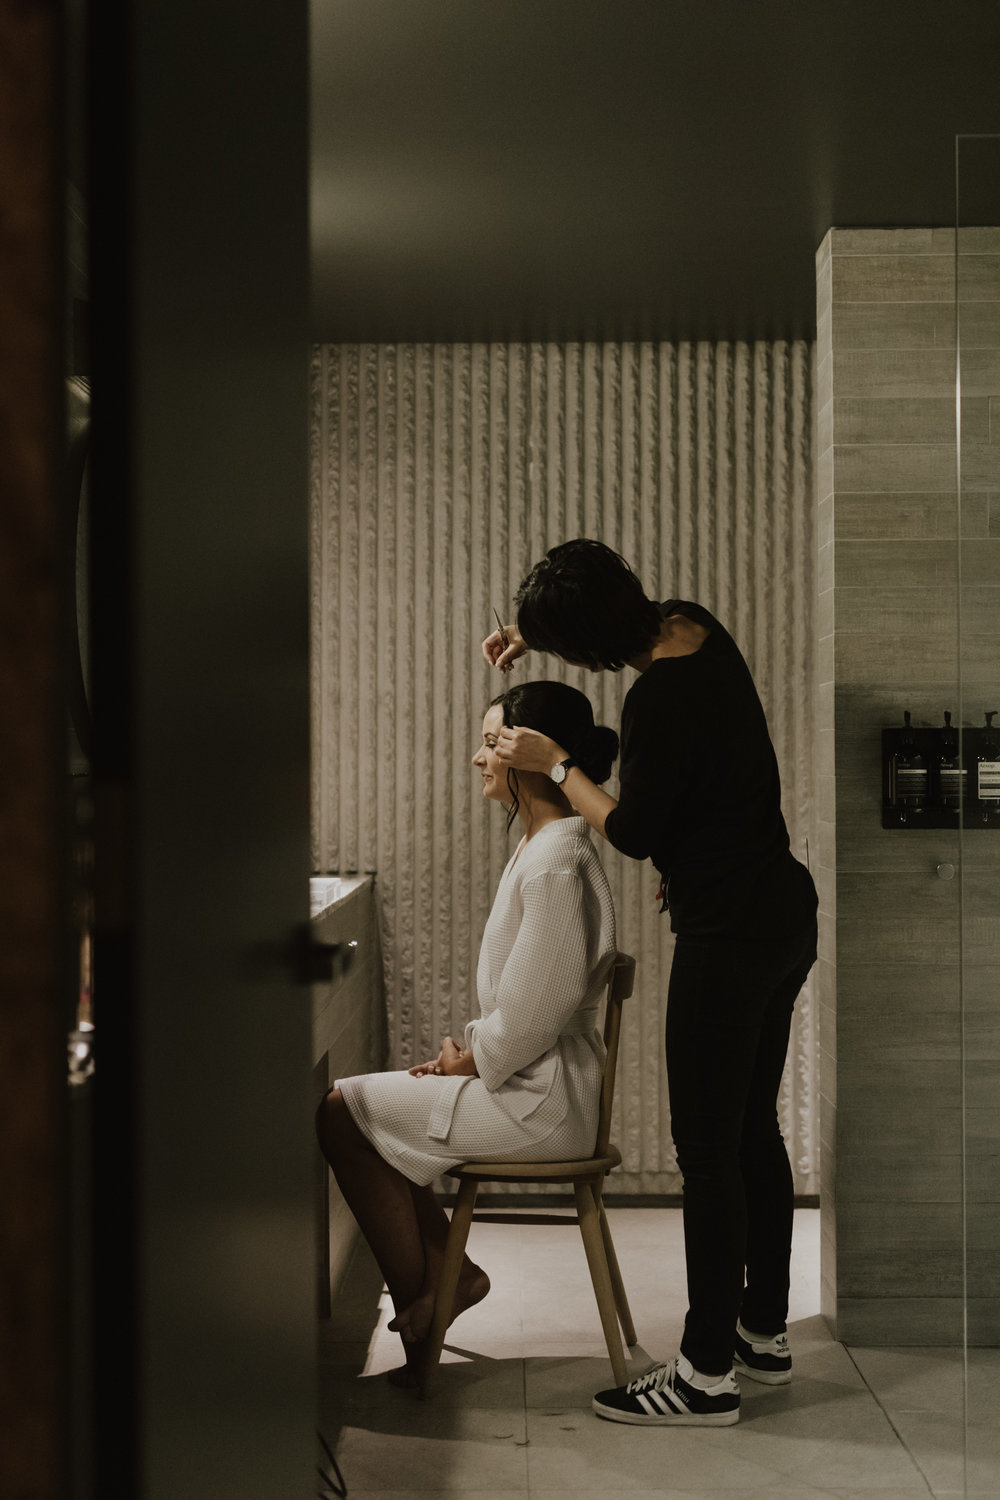 Bride getting ready at Hotel Hotel Canberra, NGA wedding, photography by Jenny Wu